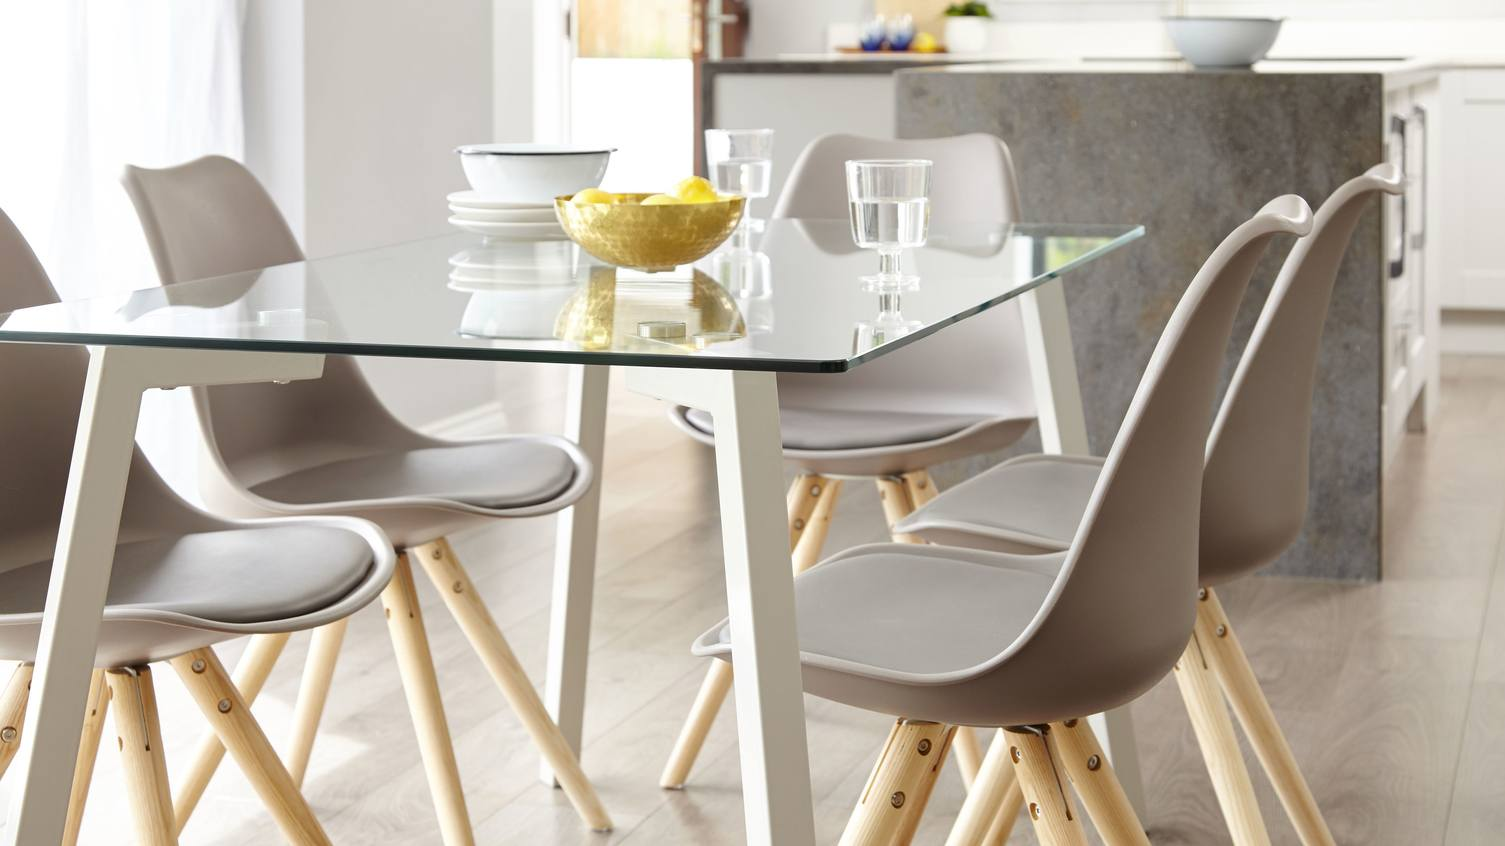 Dining Table Guide: How To Choose The Perfect Dining Table